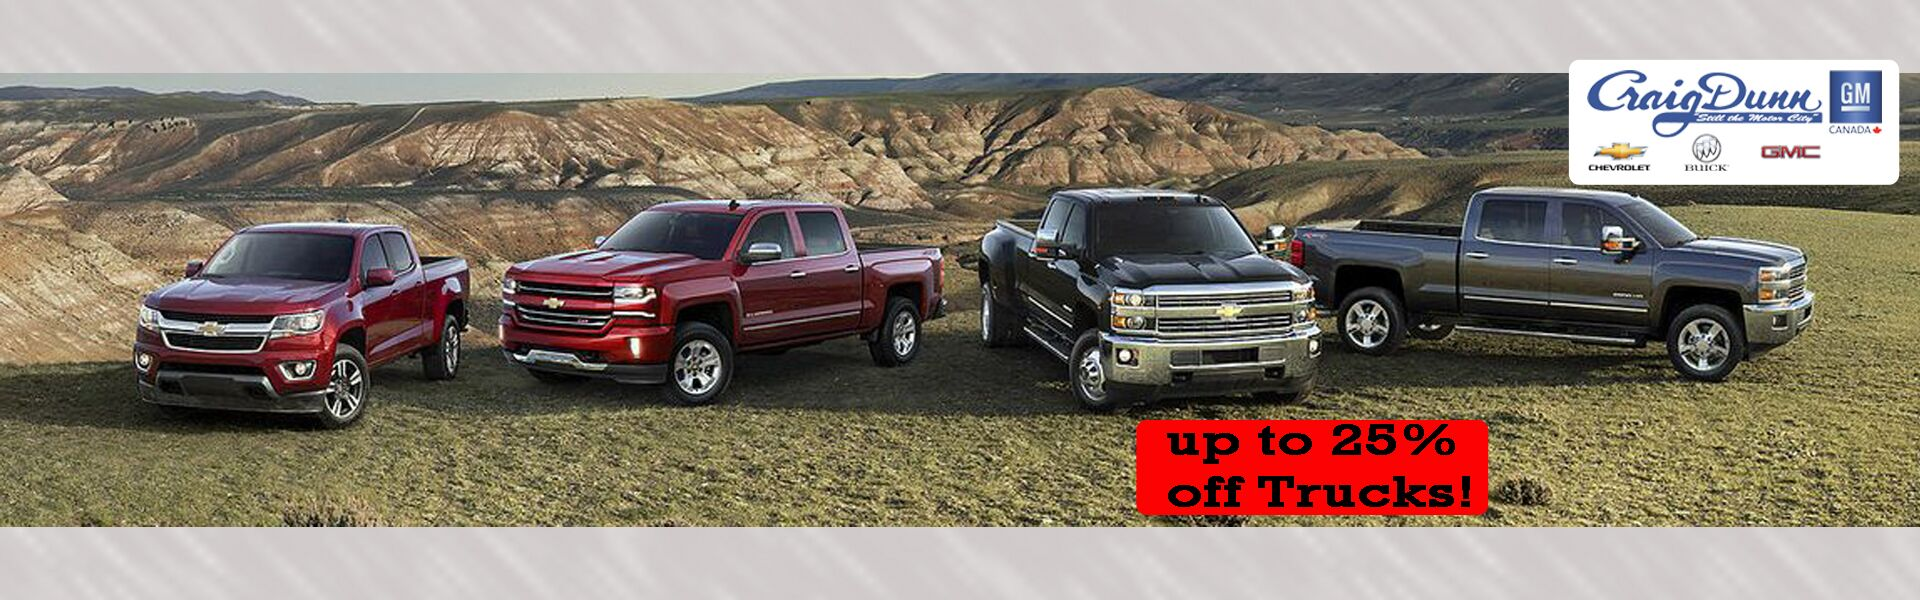 Up to 25% off Trucks